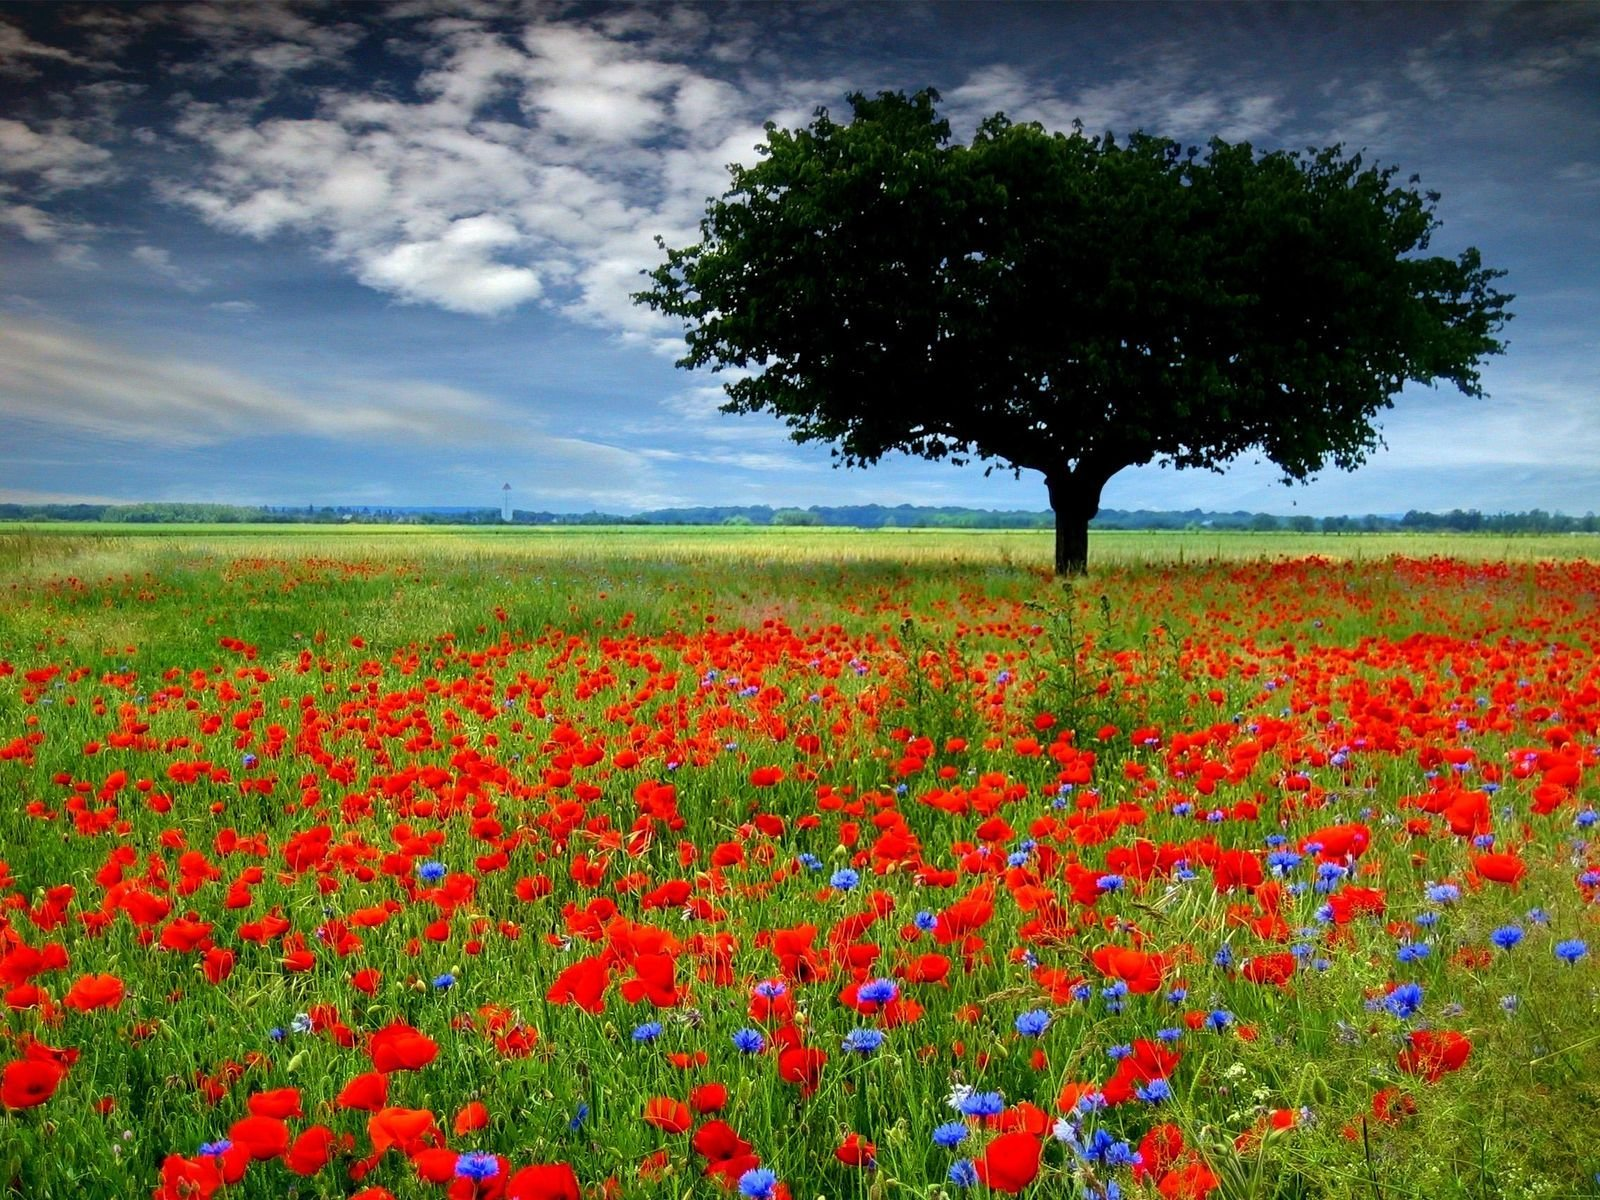 http://1.bp.blogspot.com/-nOlQpzx11Uw/Tr054DeFSsI/AAAAAAAADU4/blH0DhsEqcA/s1600/red-poppy-field-wallpapers_11808_1600x1200.jpg